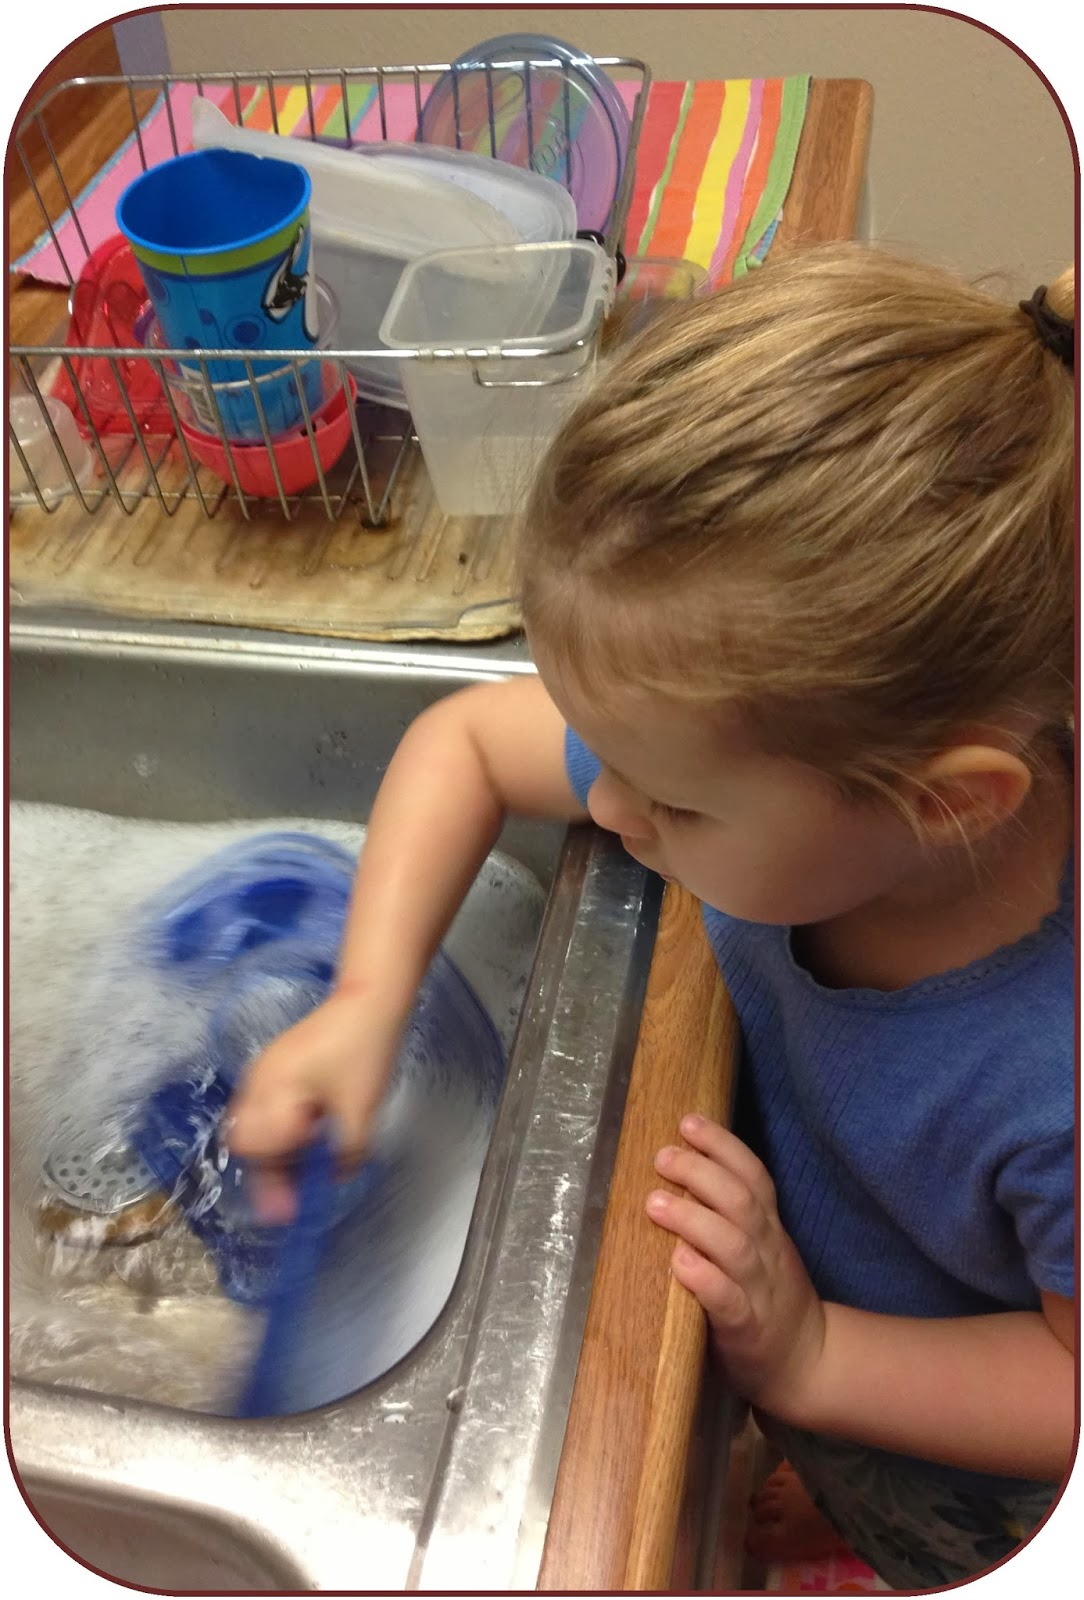 Kids can help wash and rise dishes as a way to help with chores and play in the water, too!   www.lifeinrandombits.com #kids #chores #play